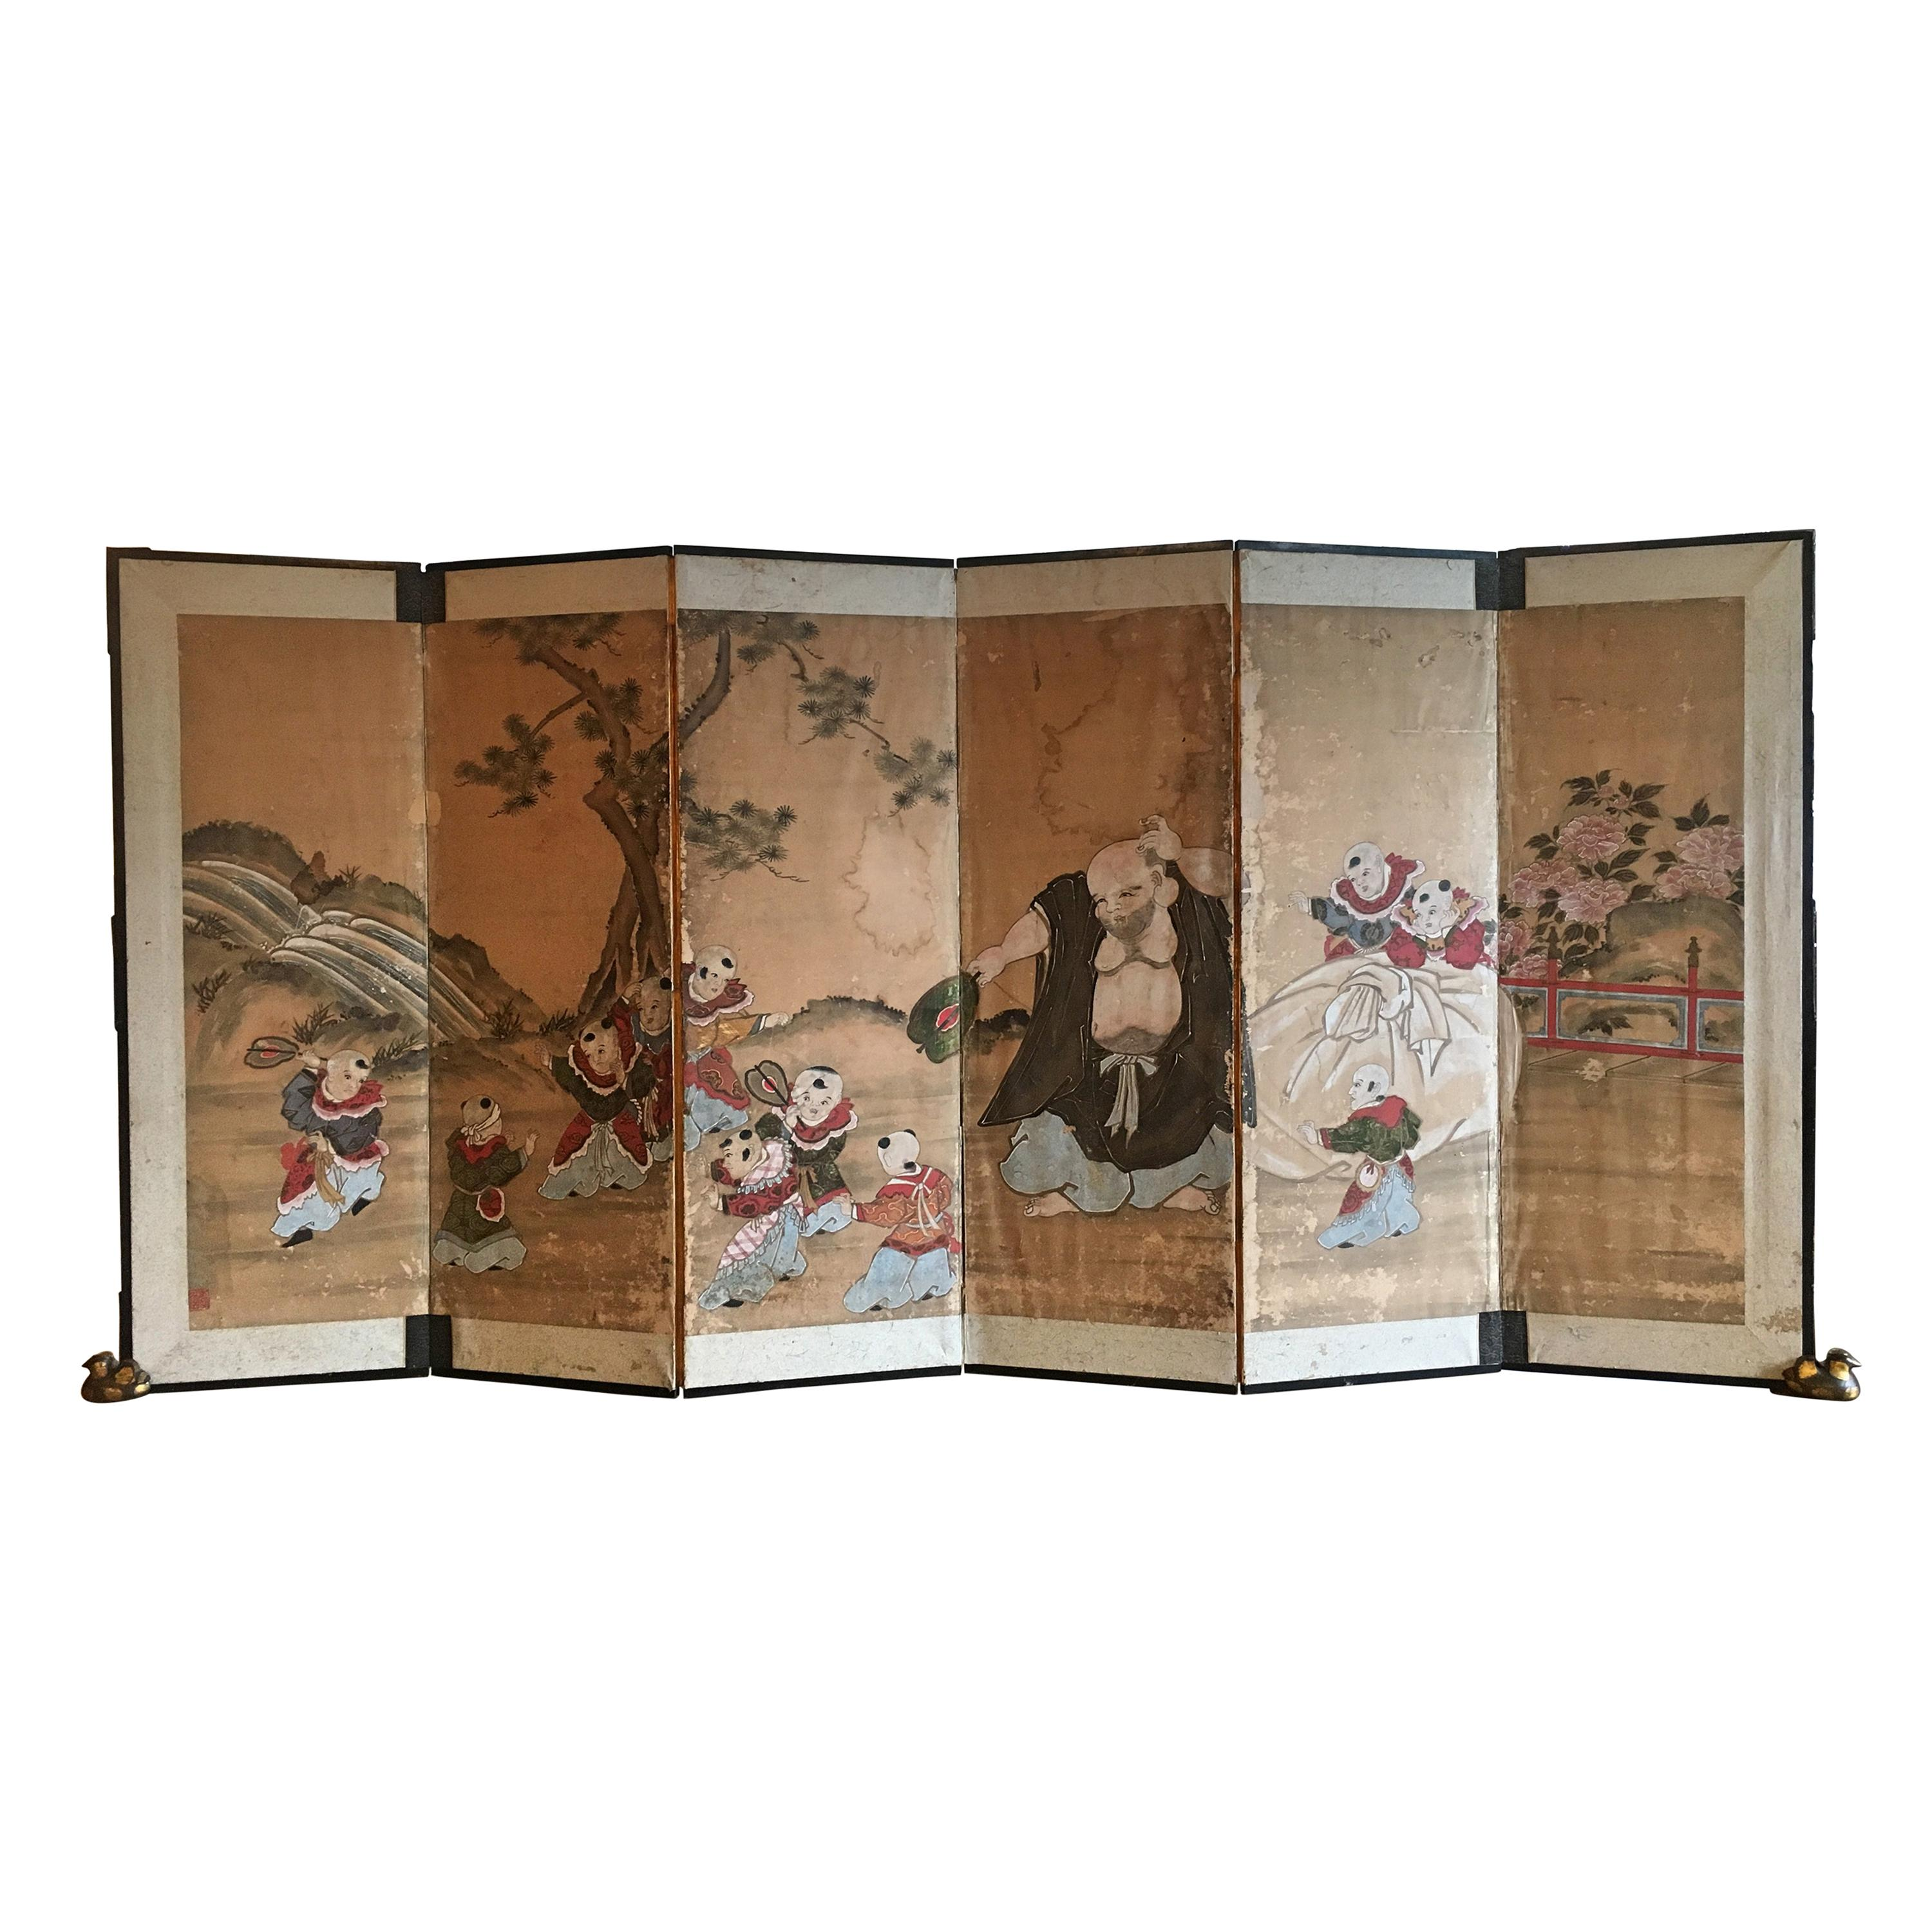 Japanese Six Panel Screen with Hotei, Edo Period, Early 19th Century